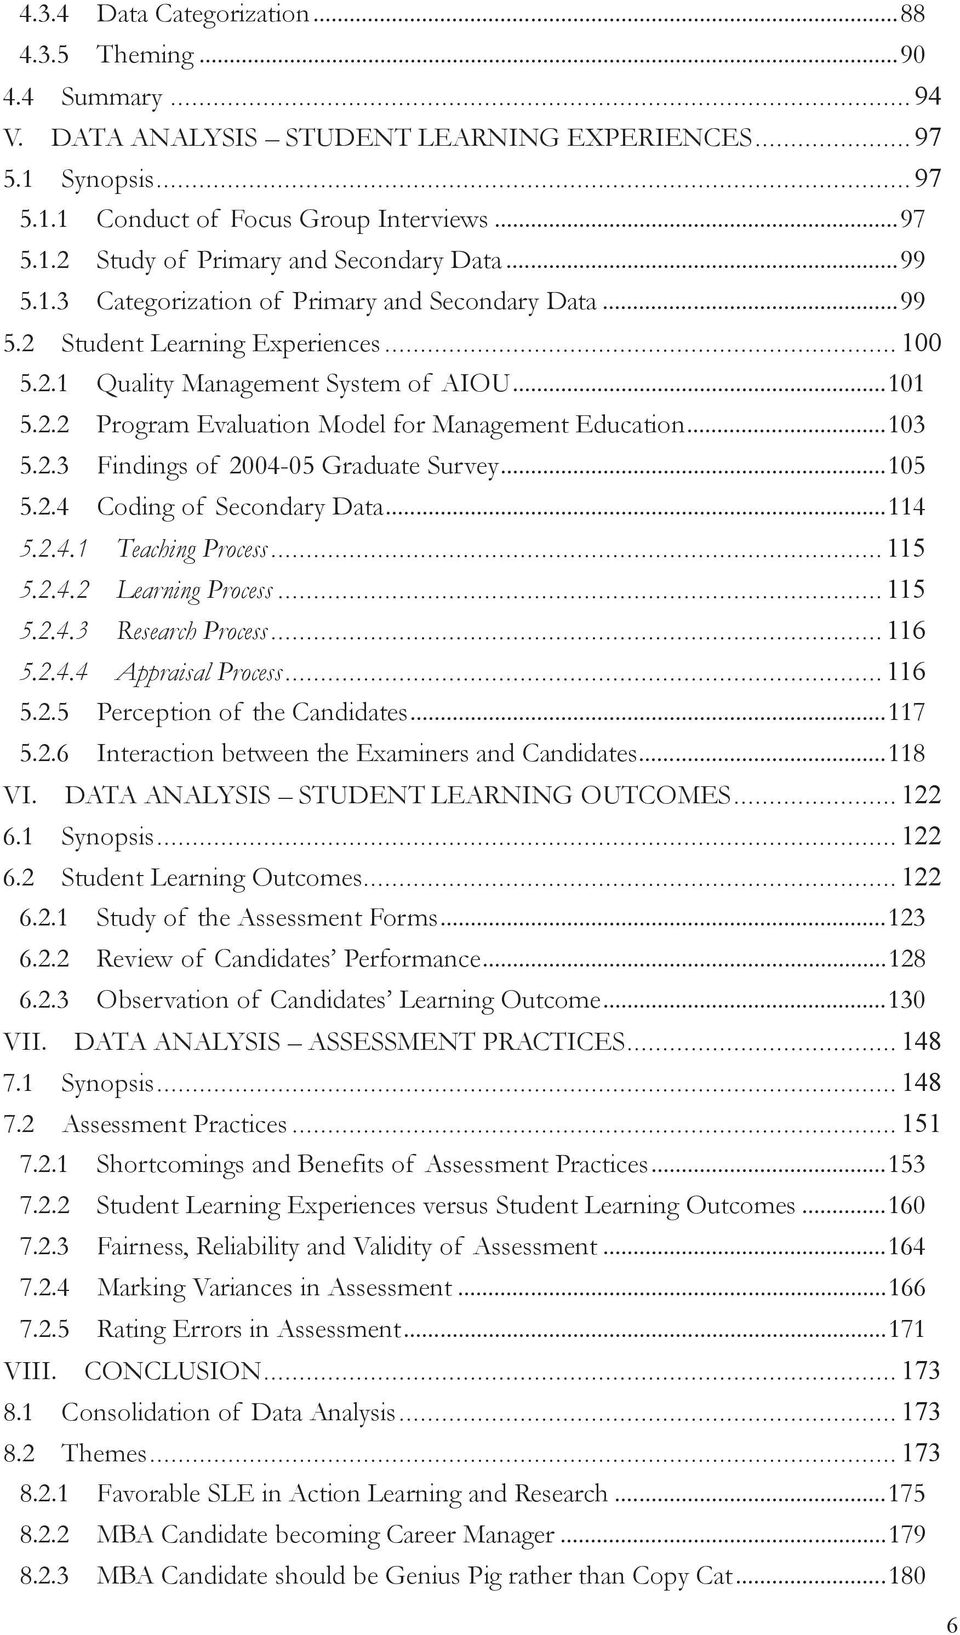 .. 103 5.2.3 Findings of 2004-05 Graduate Survey... 105 5.2.4 Coding of Secondary Data... 114 5.2.4.1 Teaching Process... 115 5.2.4.2 Learning Process... 115 5.2.4.3 Research Process... 116 5.2.4.4 Appraisal Process.